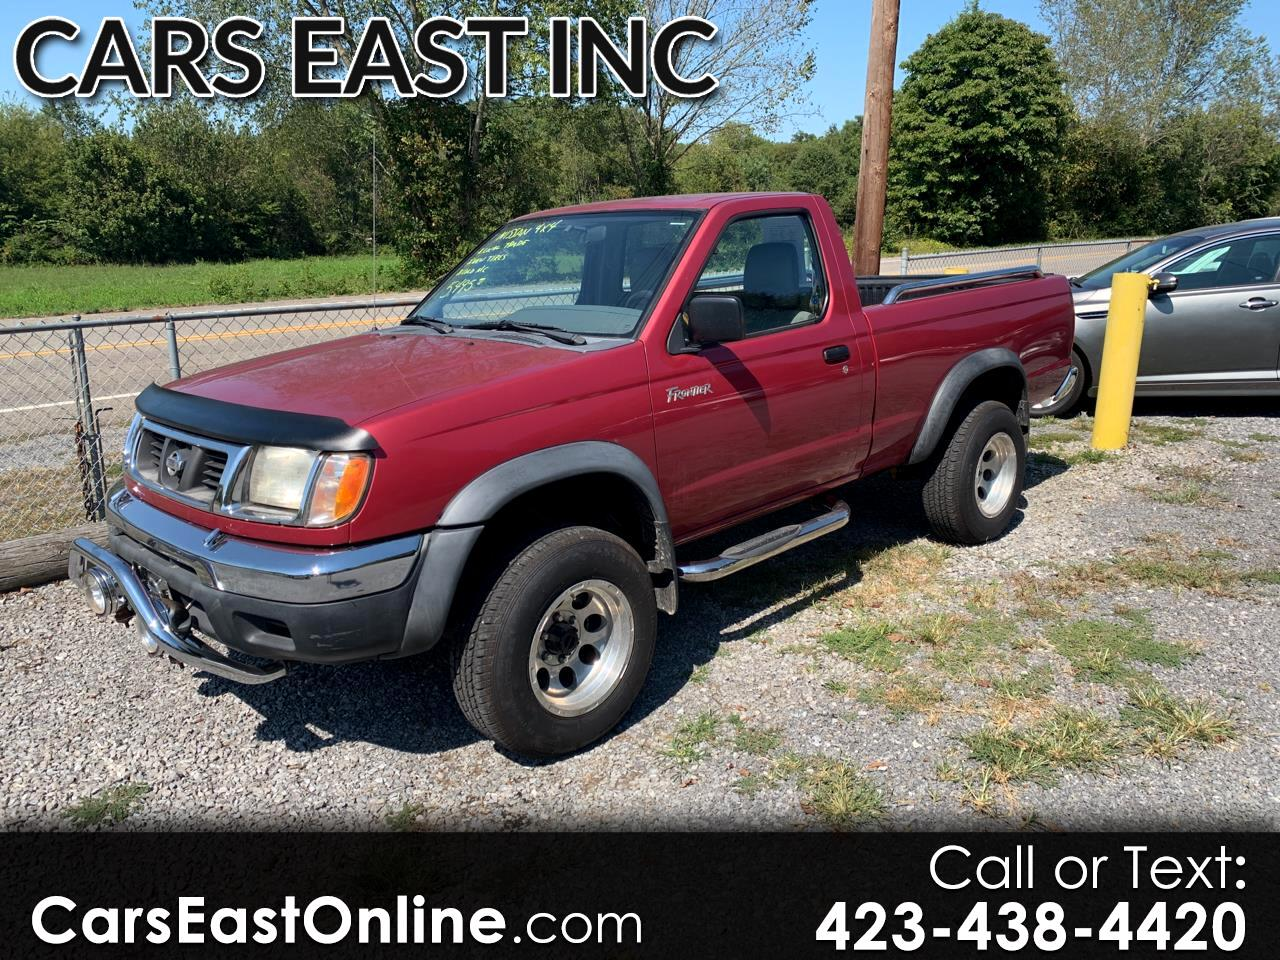 1998 Nissan Frontier 4WD XE Reg Cab